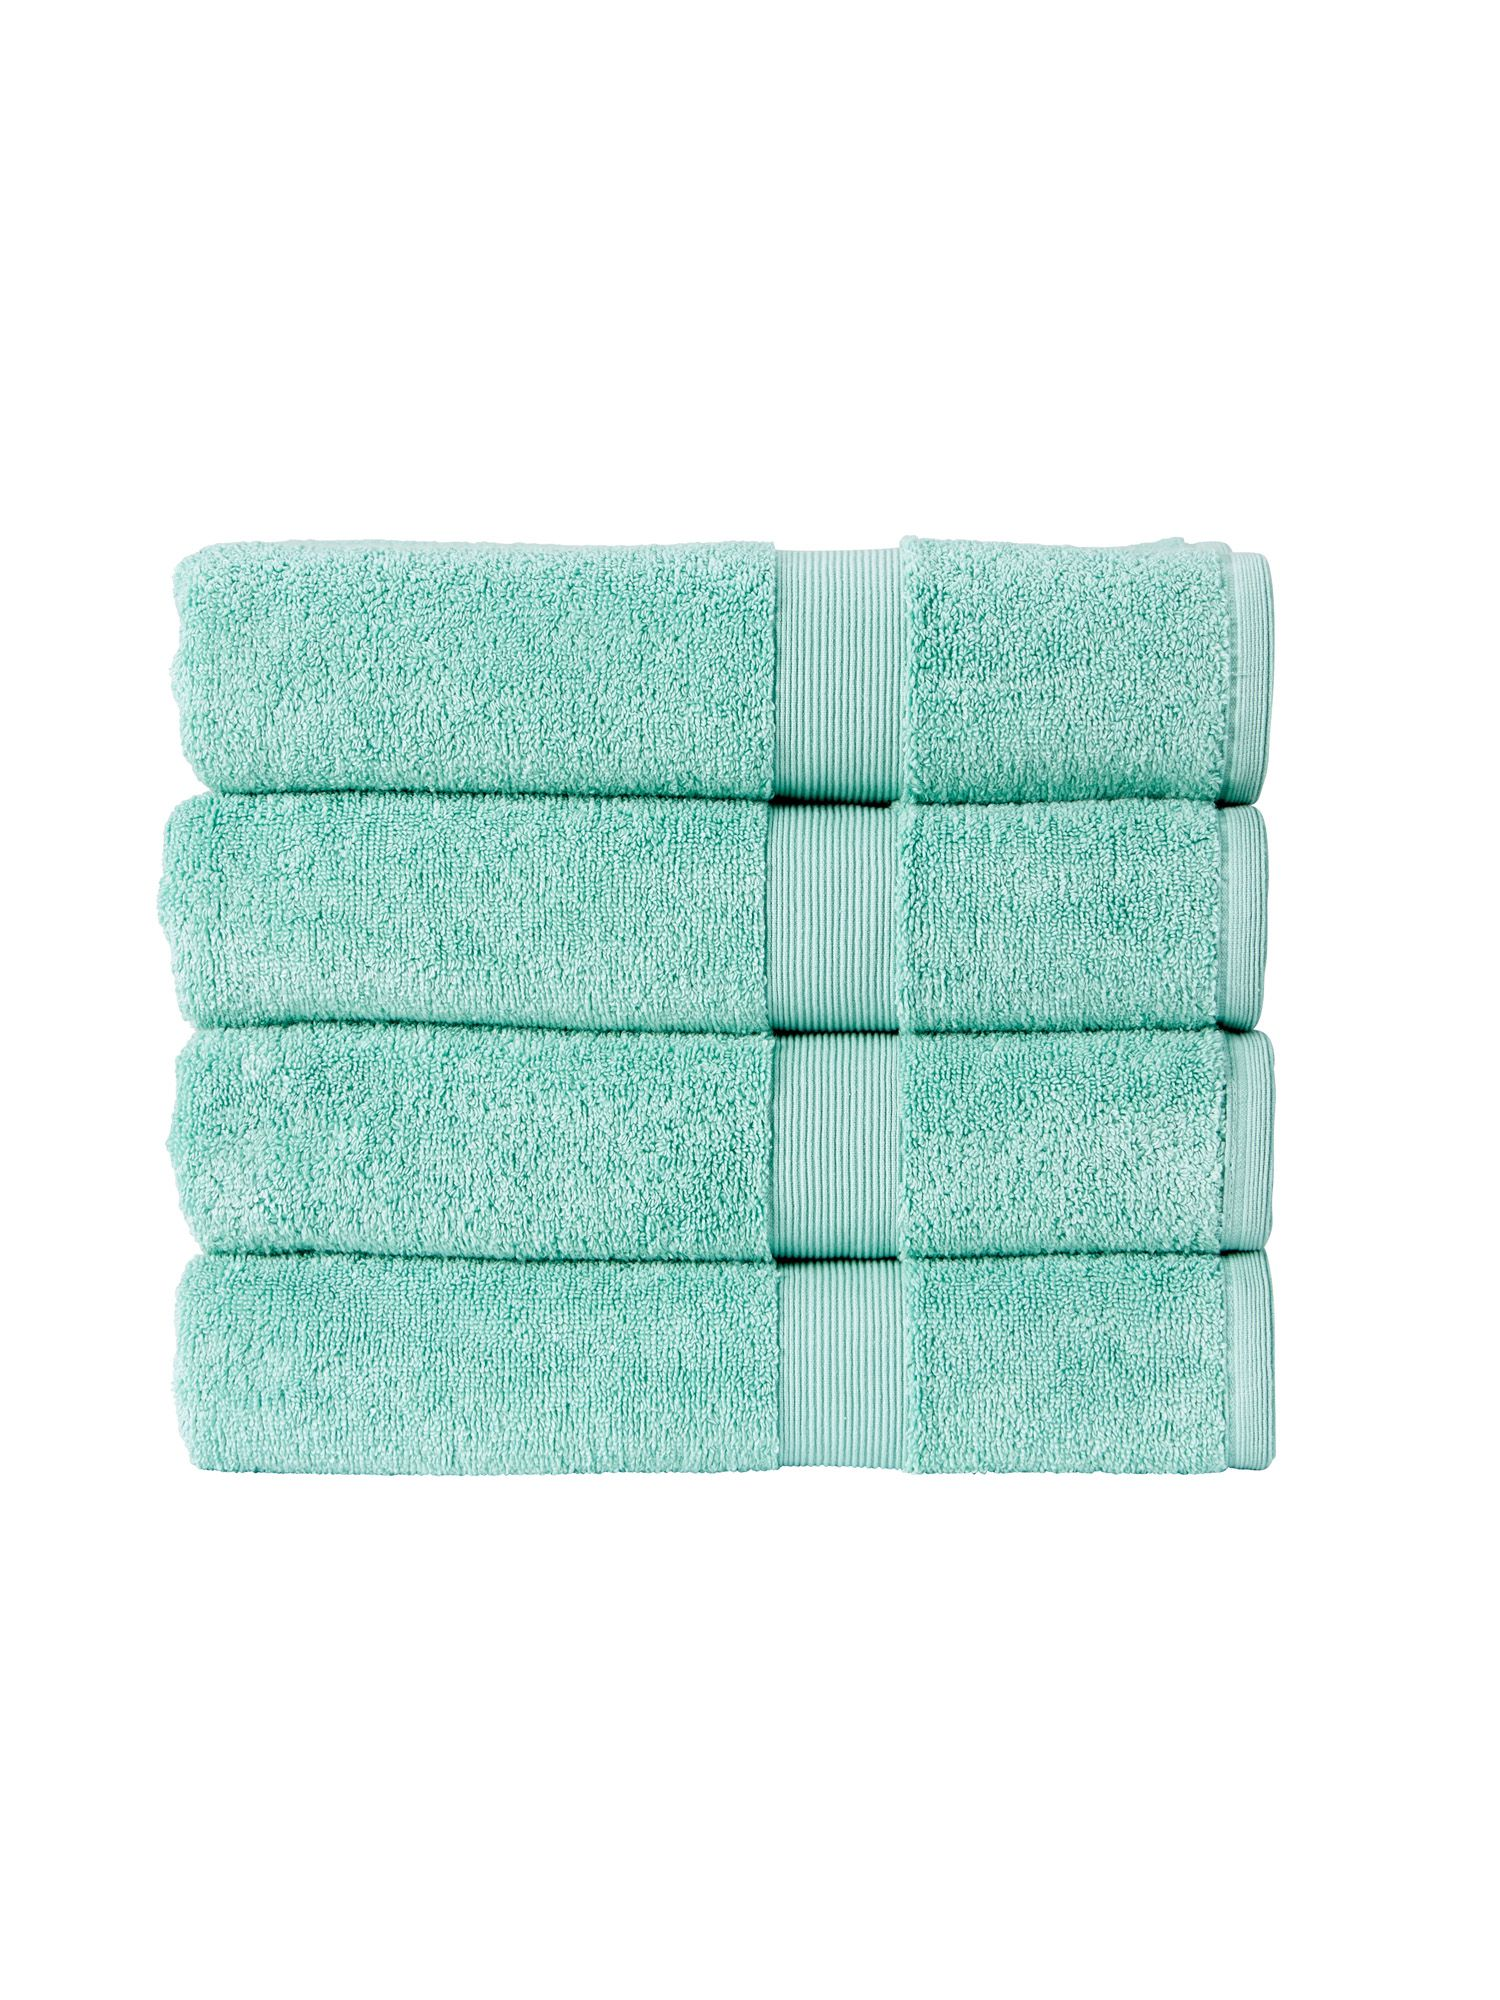 similar towels christy chevron towel house of fraser 1